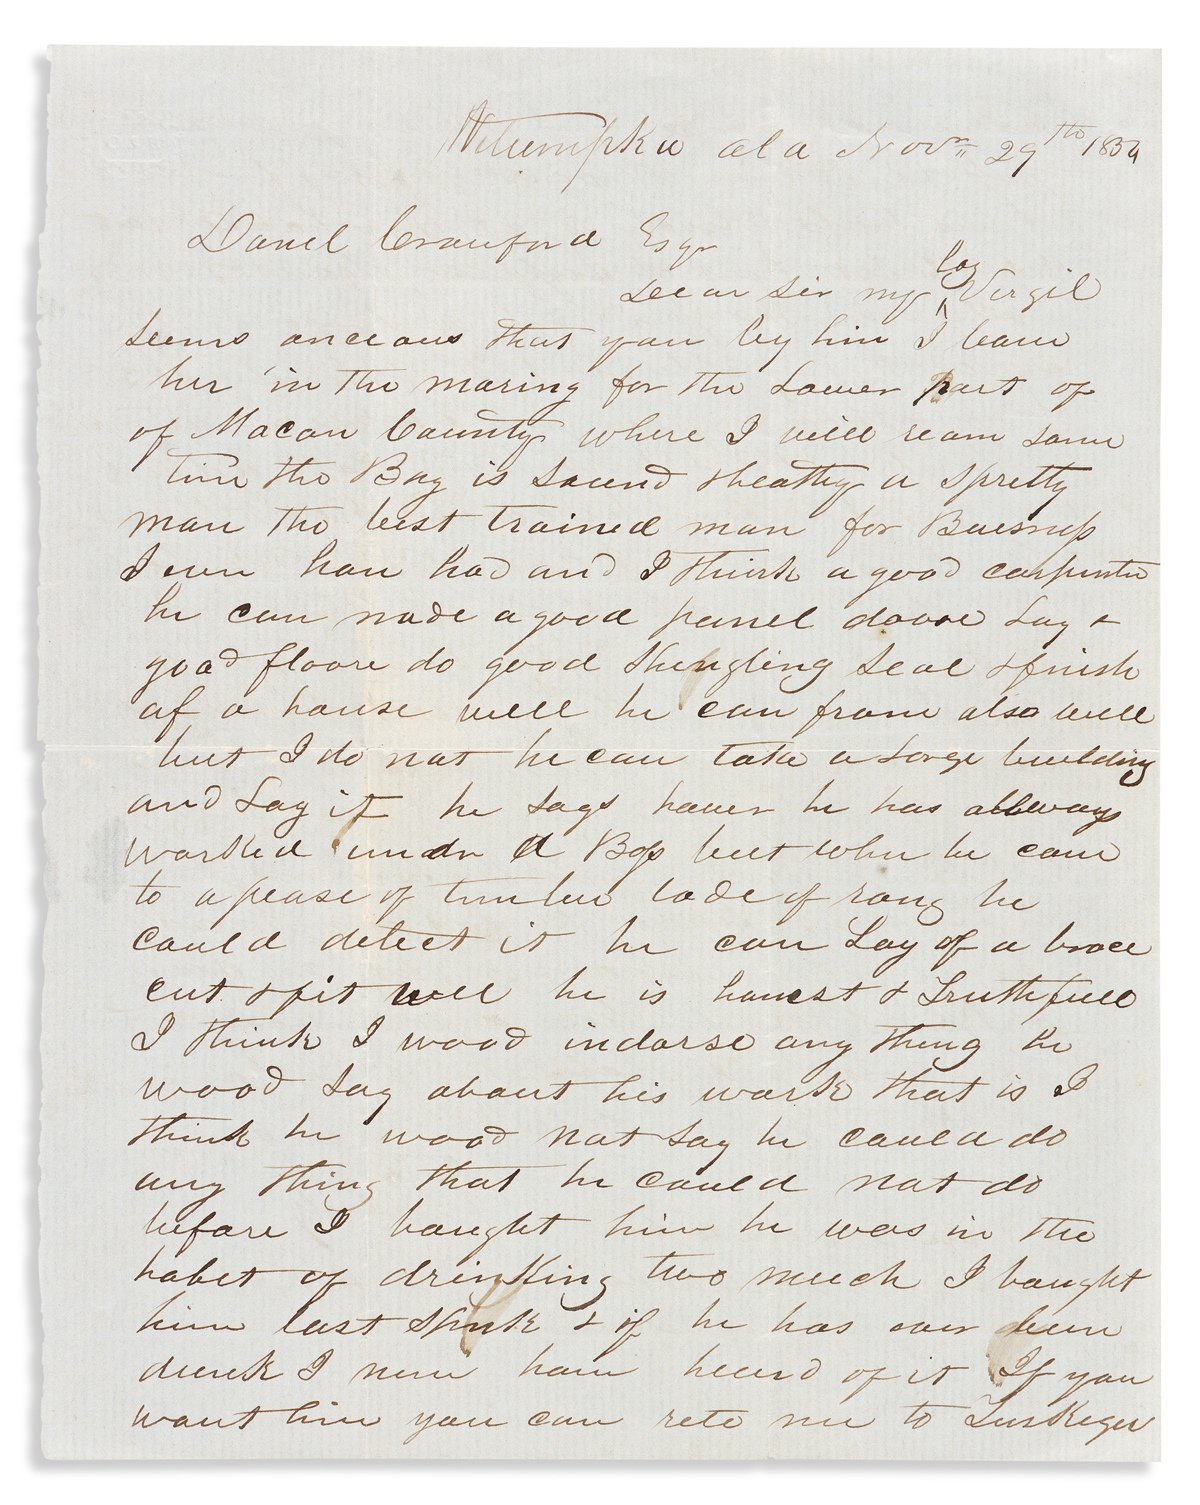 (SLAVERY AND ABOLITION.) James A. Barr. Letter discussing an enslaved 34-year-old boy who seems anxious that you buy him.